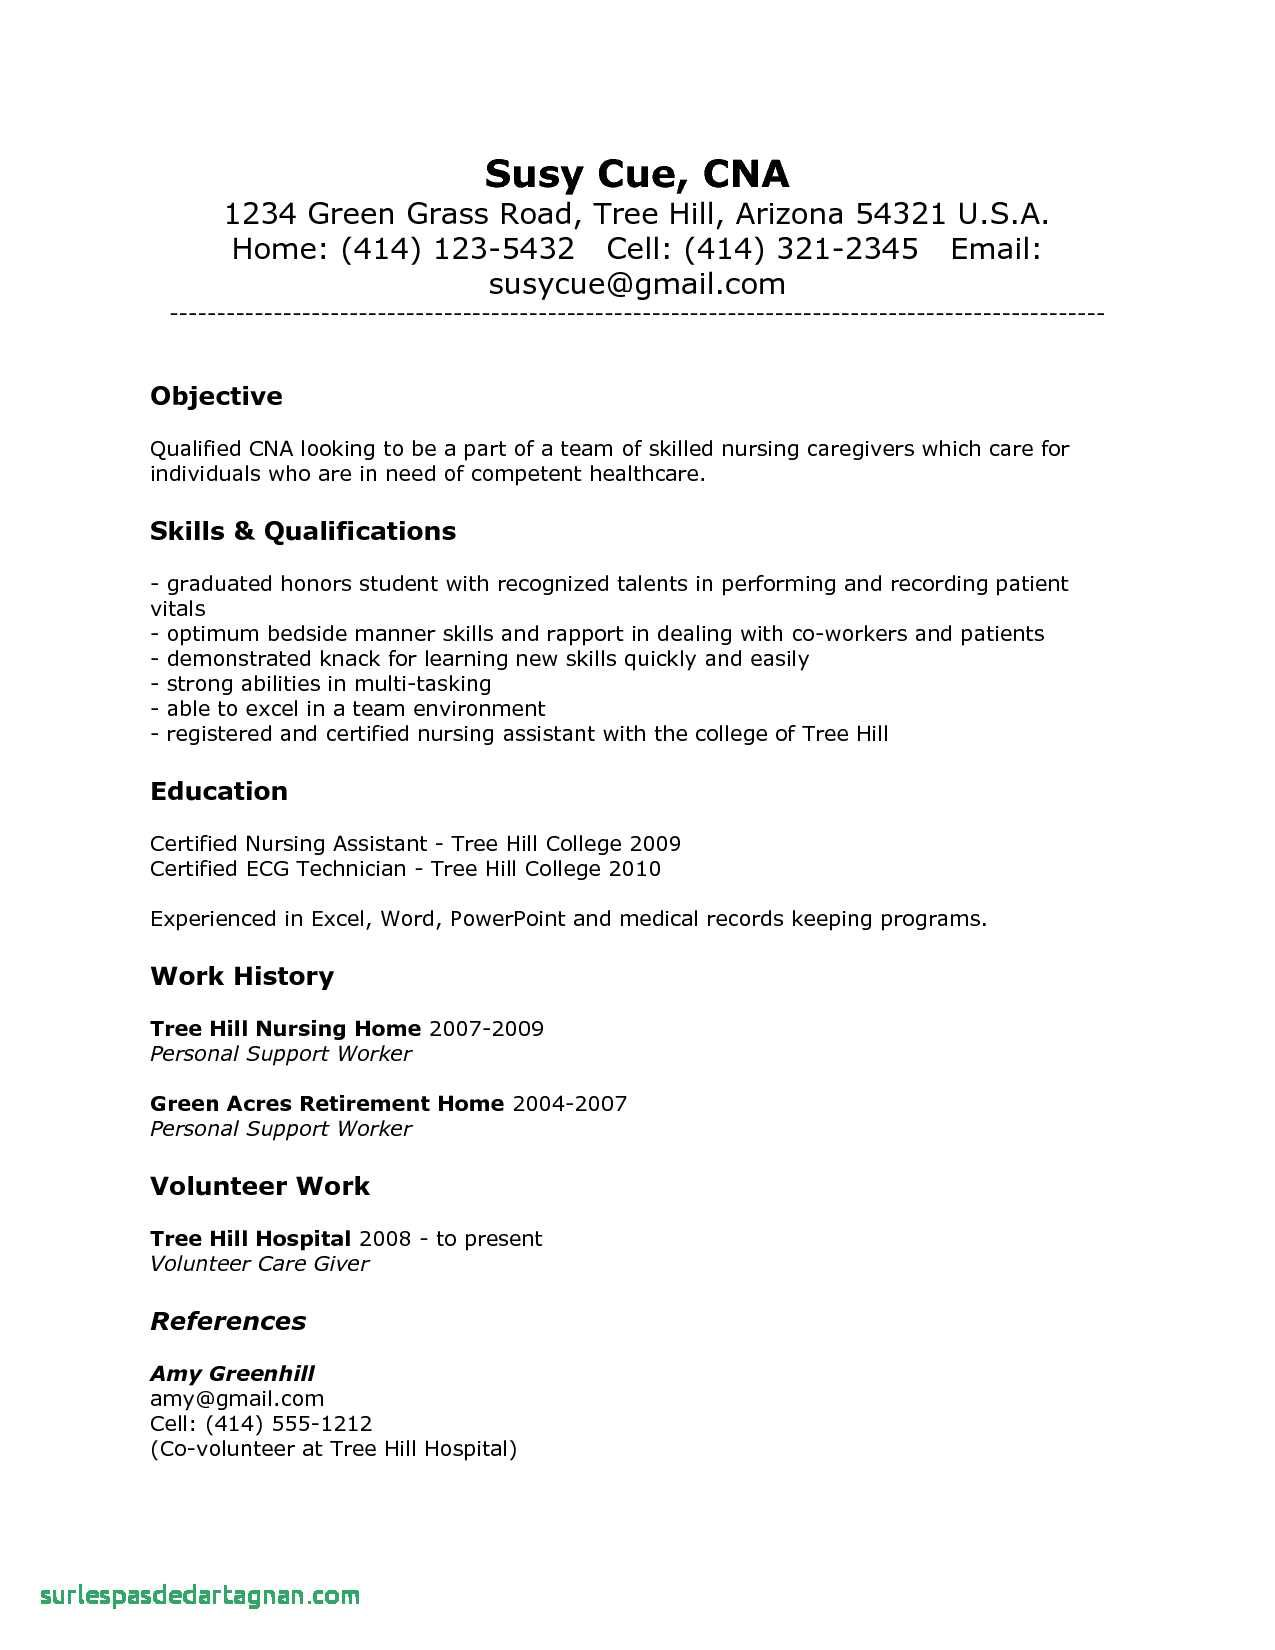 pin on resume templates cna examples personal assistant example readwritethink generator Resume Cna Resume Examples 2018